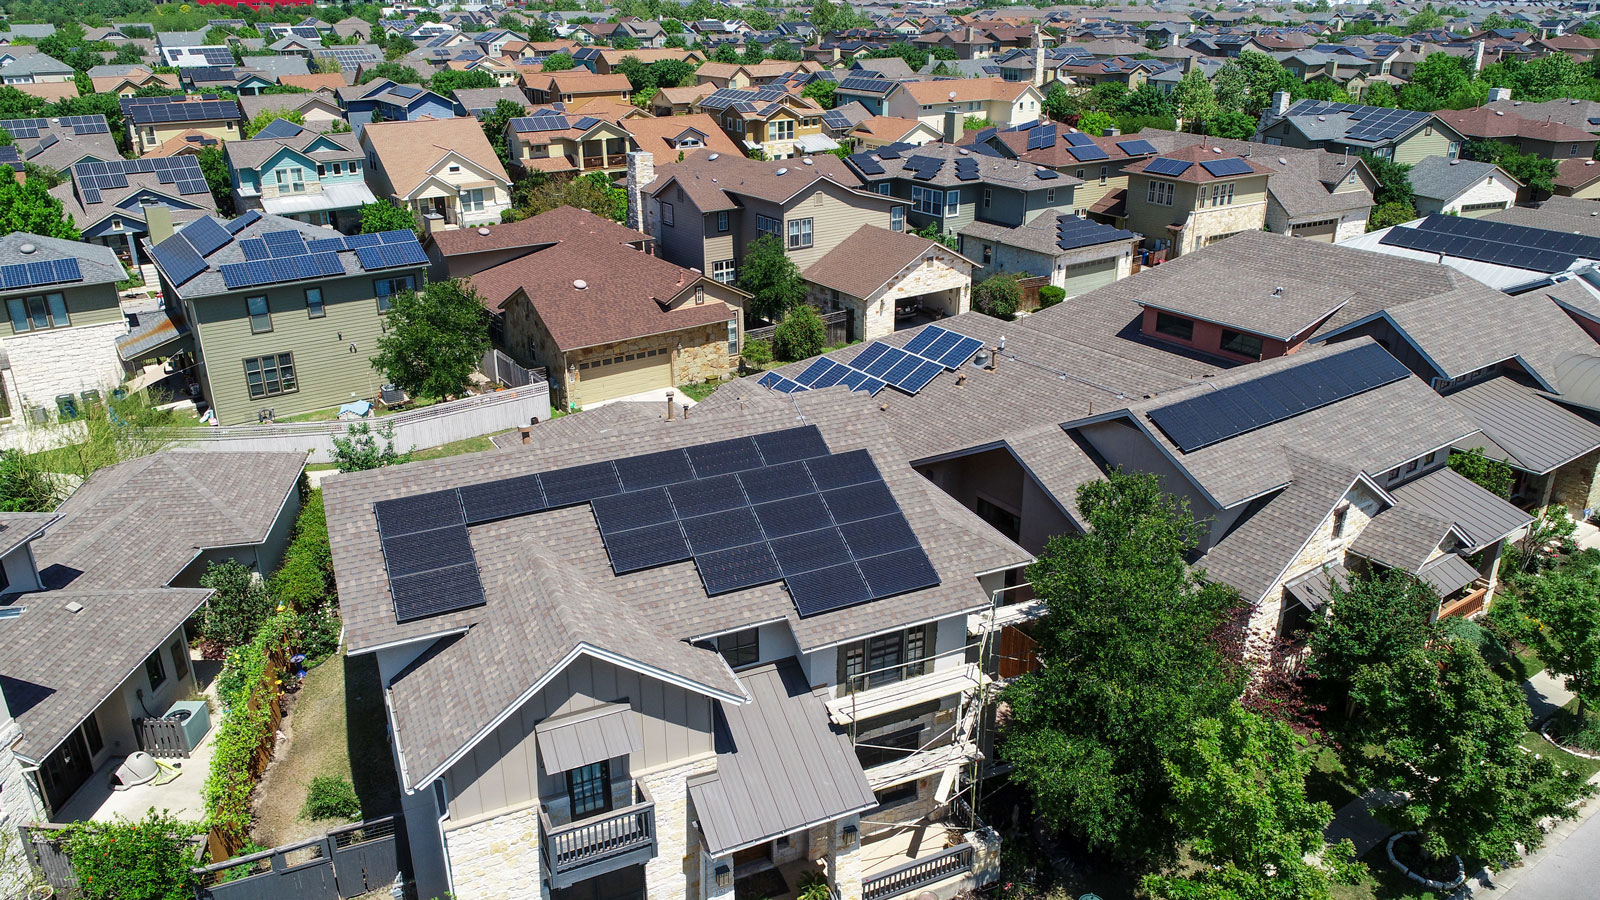 <h4>Homes Go Solar</h4><h5>Our Homes Go Solar campaign is urging state leaders to make solar standard on all new homes — because every new home built without solar panels is a missed opportunity to reduce pollution and leave our children a more livable planet.</h5><em>Roschetzky Photography via Shutterstock.com</em>